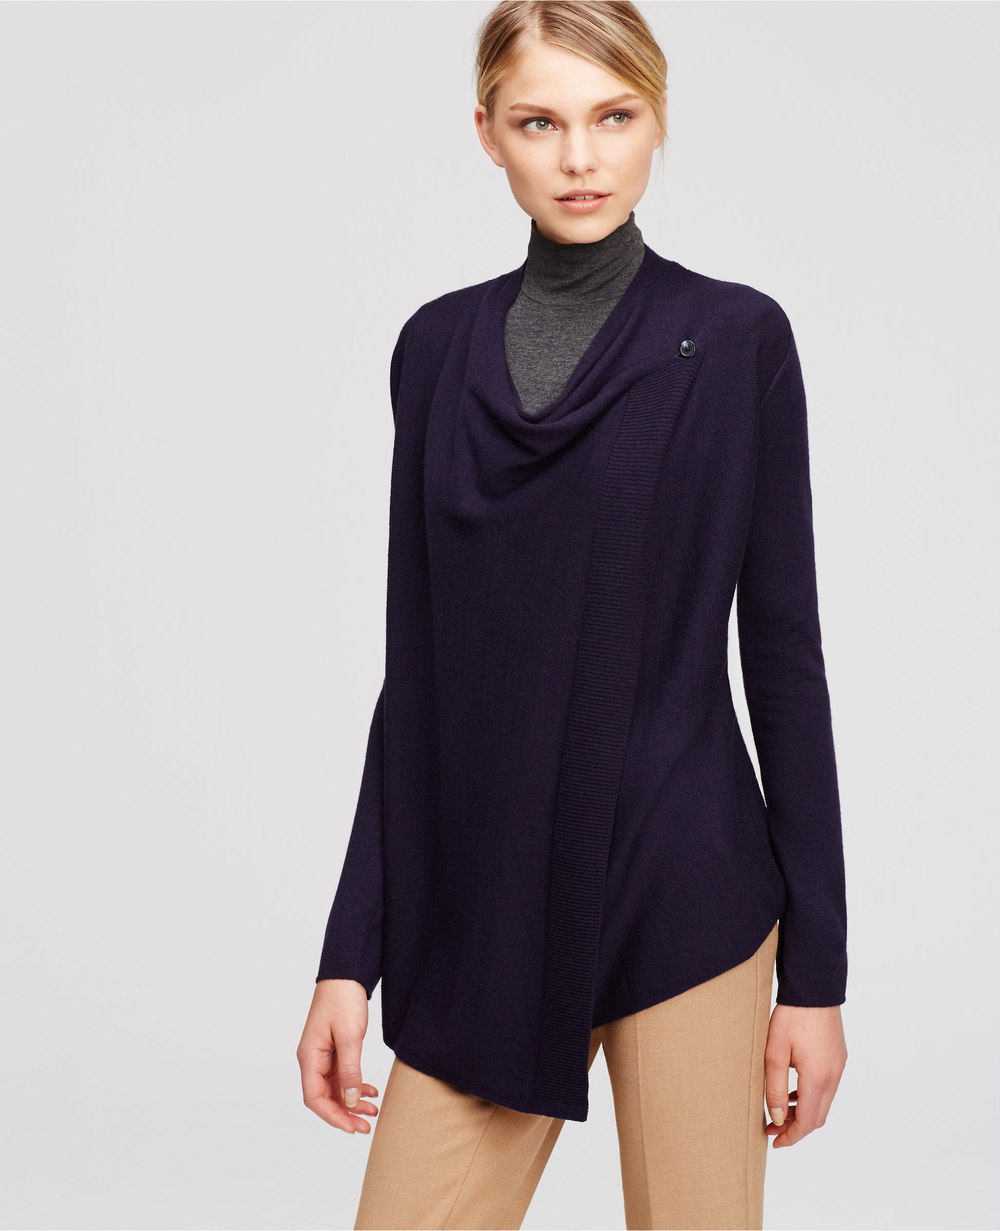 Navy Petite Wrap Sweater. Ann Taylor. $79.